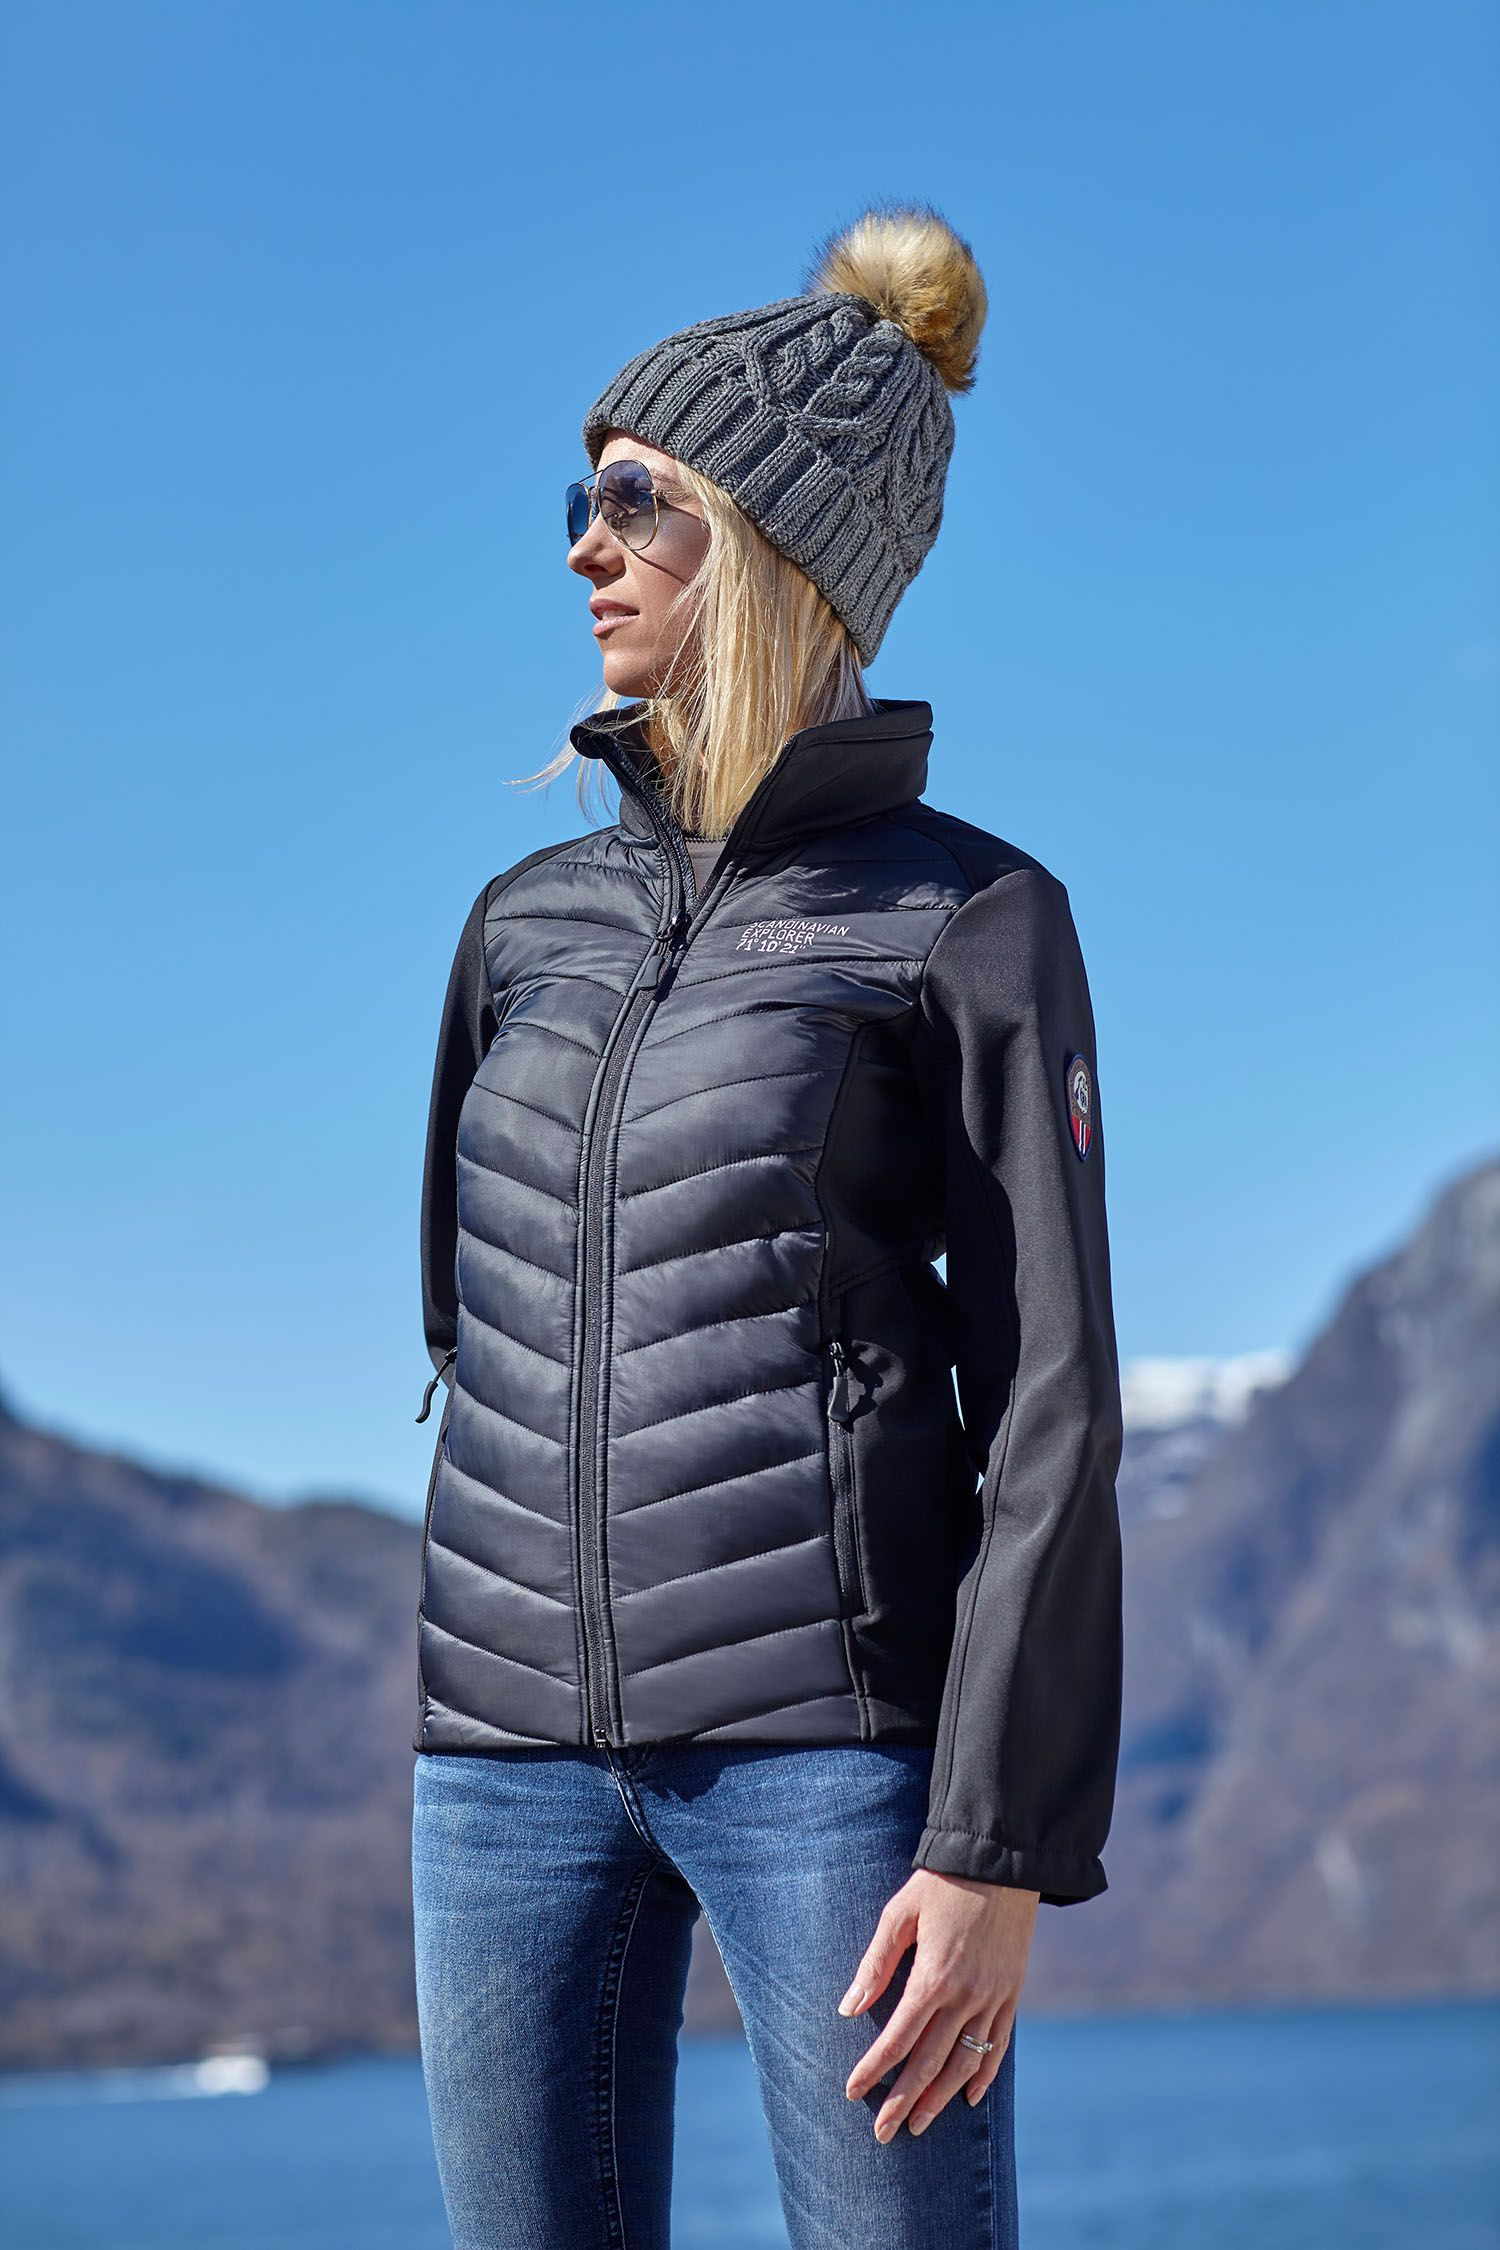 Have Your Tried This Amazing Hybrid Jacket By Scandinavian Explorer You Re Gonna Love It Go Hybrid Https Mallofnorway Com Women Jackets Coats Weatherproof Med Bilder